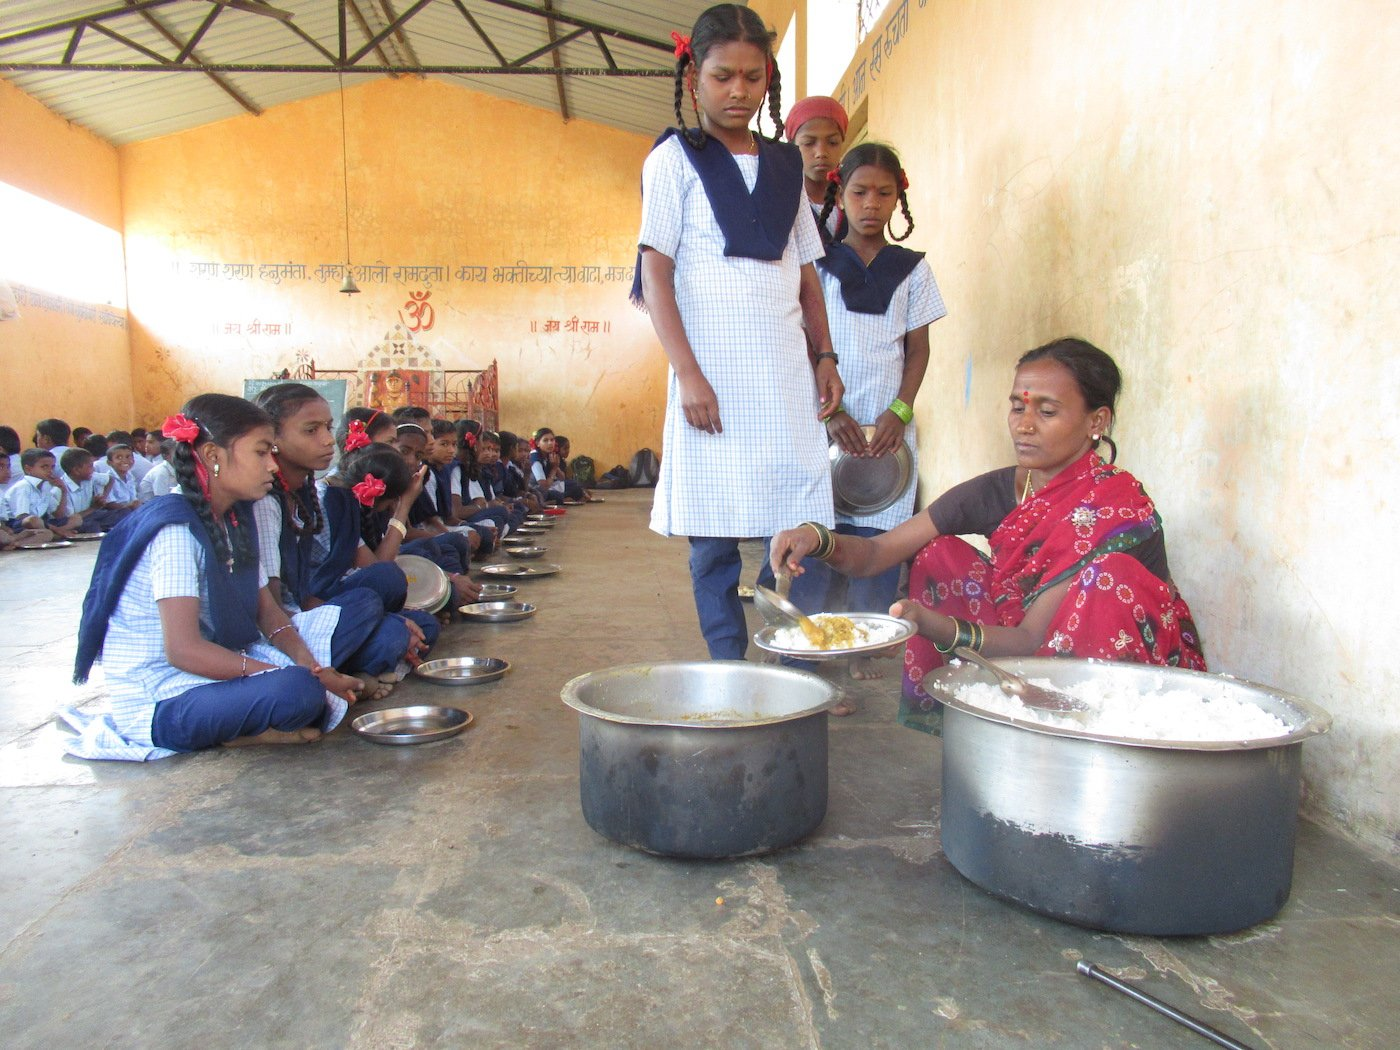 Students wait for their turn while the meal is being served